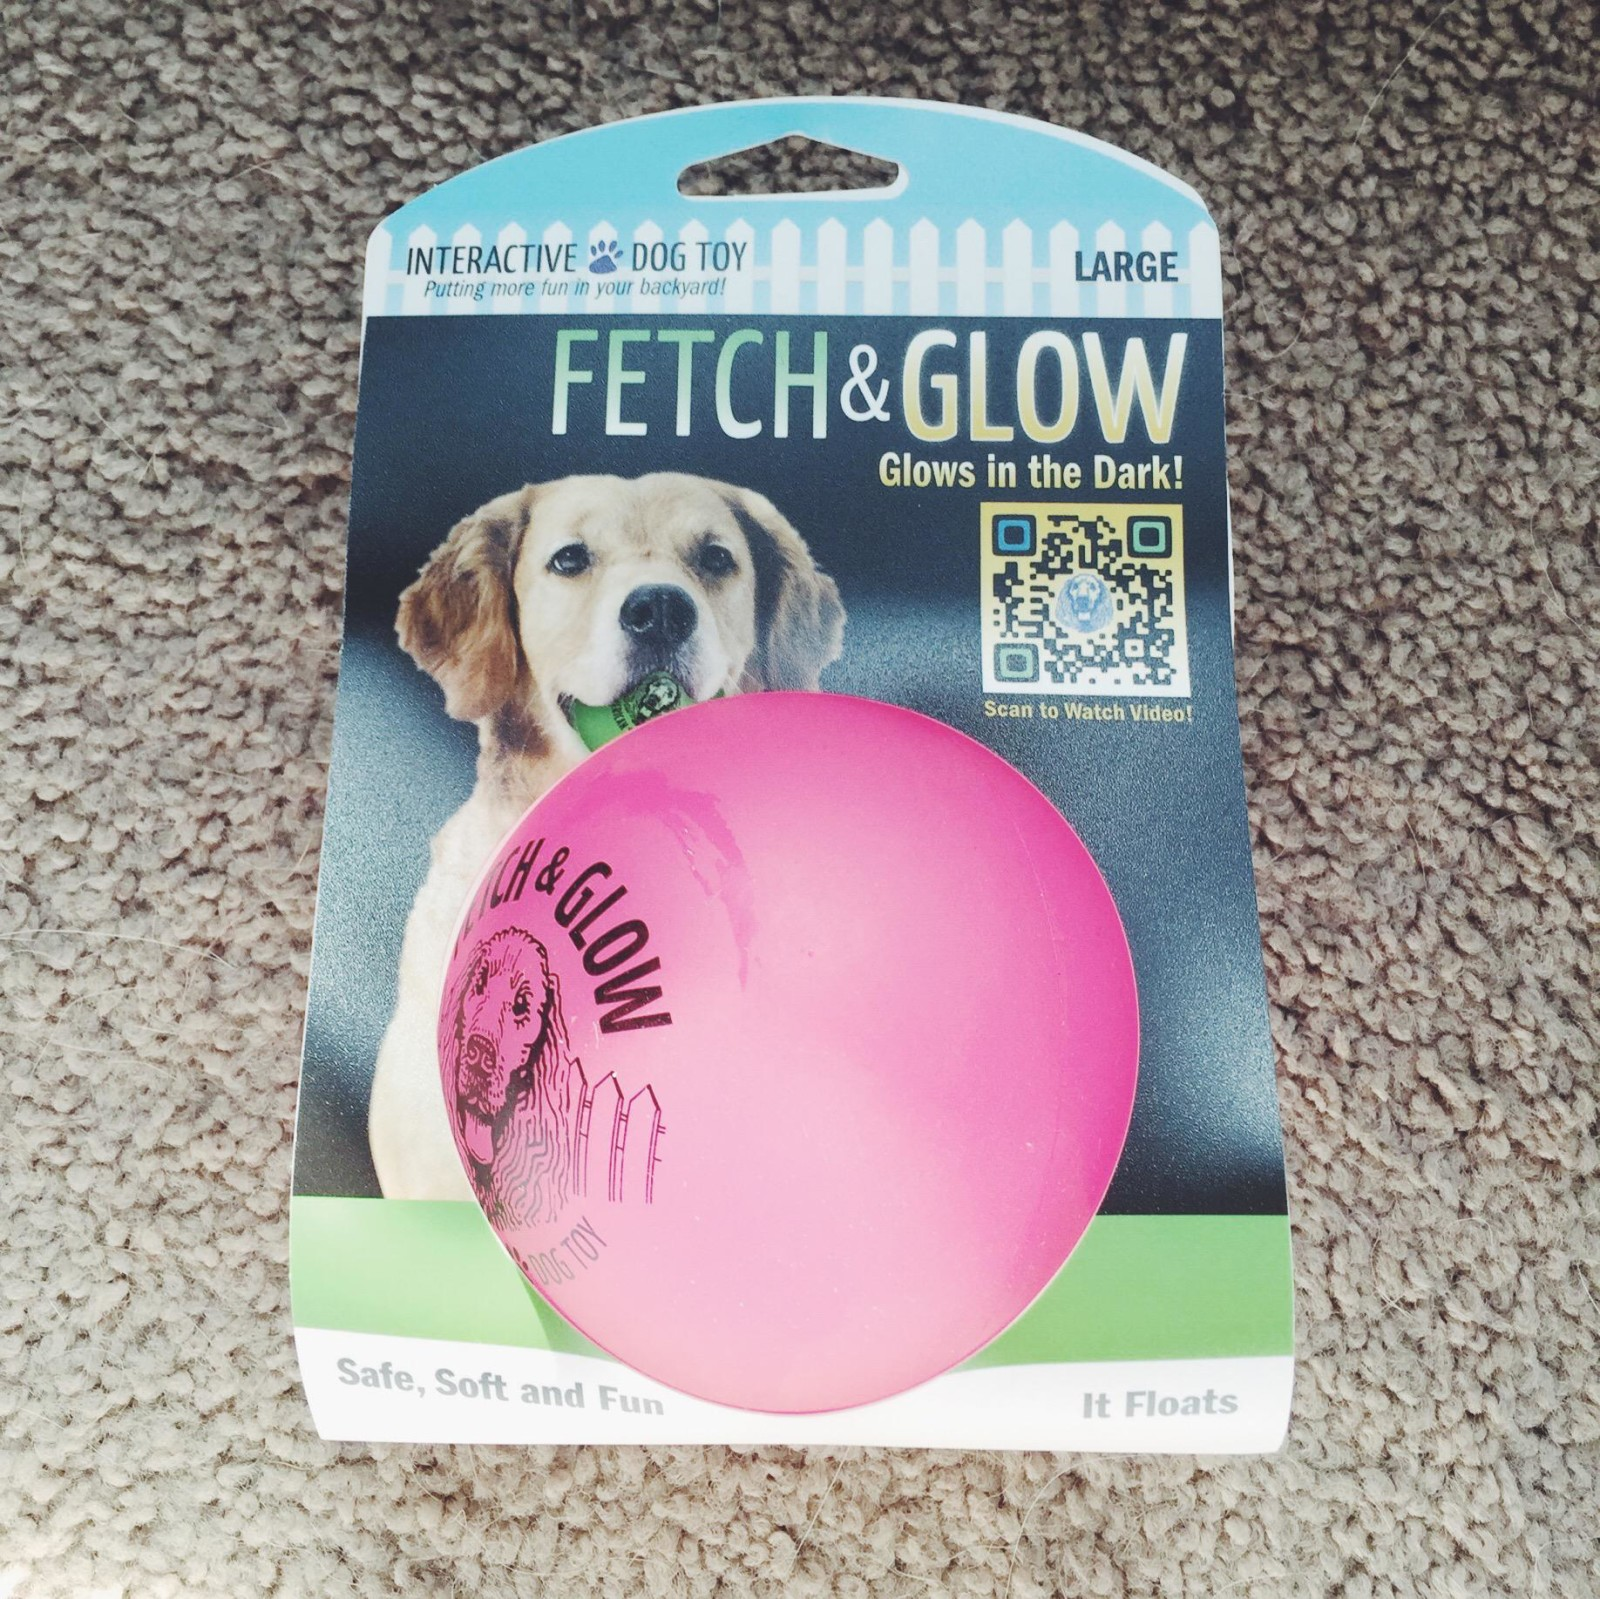 fetch and glow ball